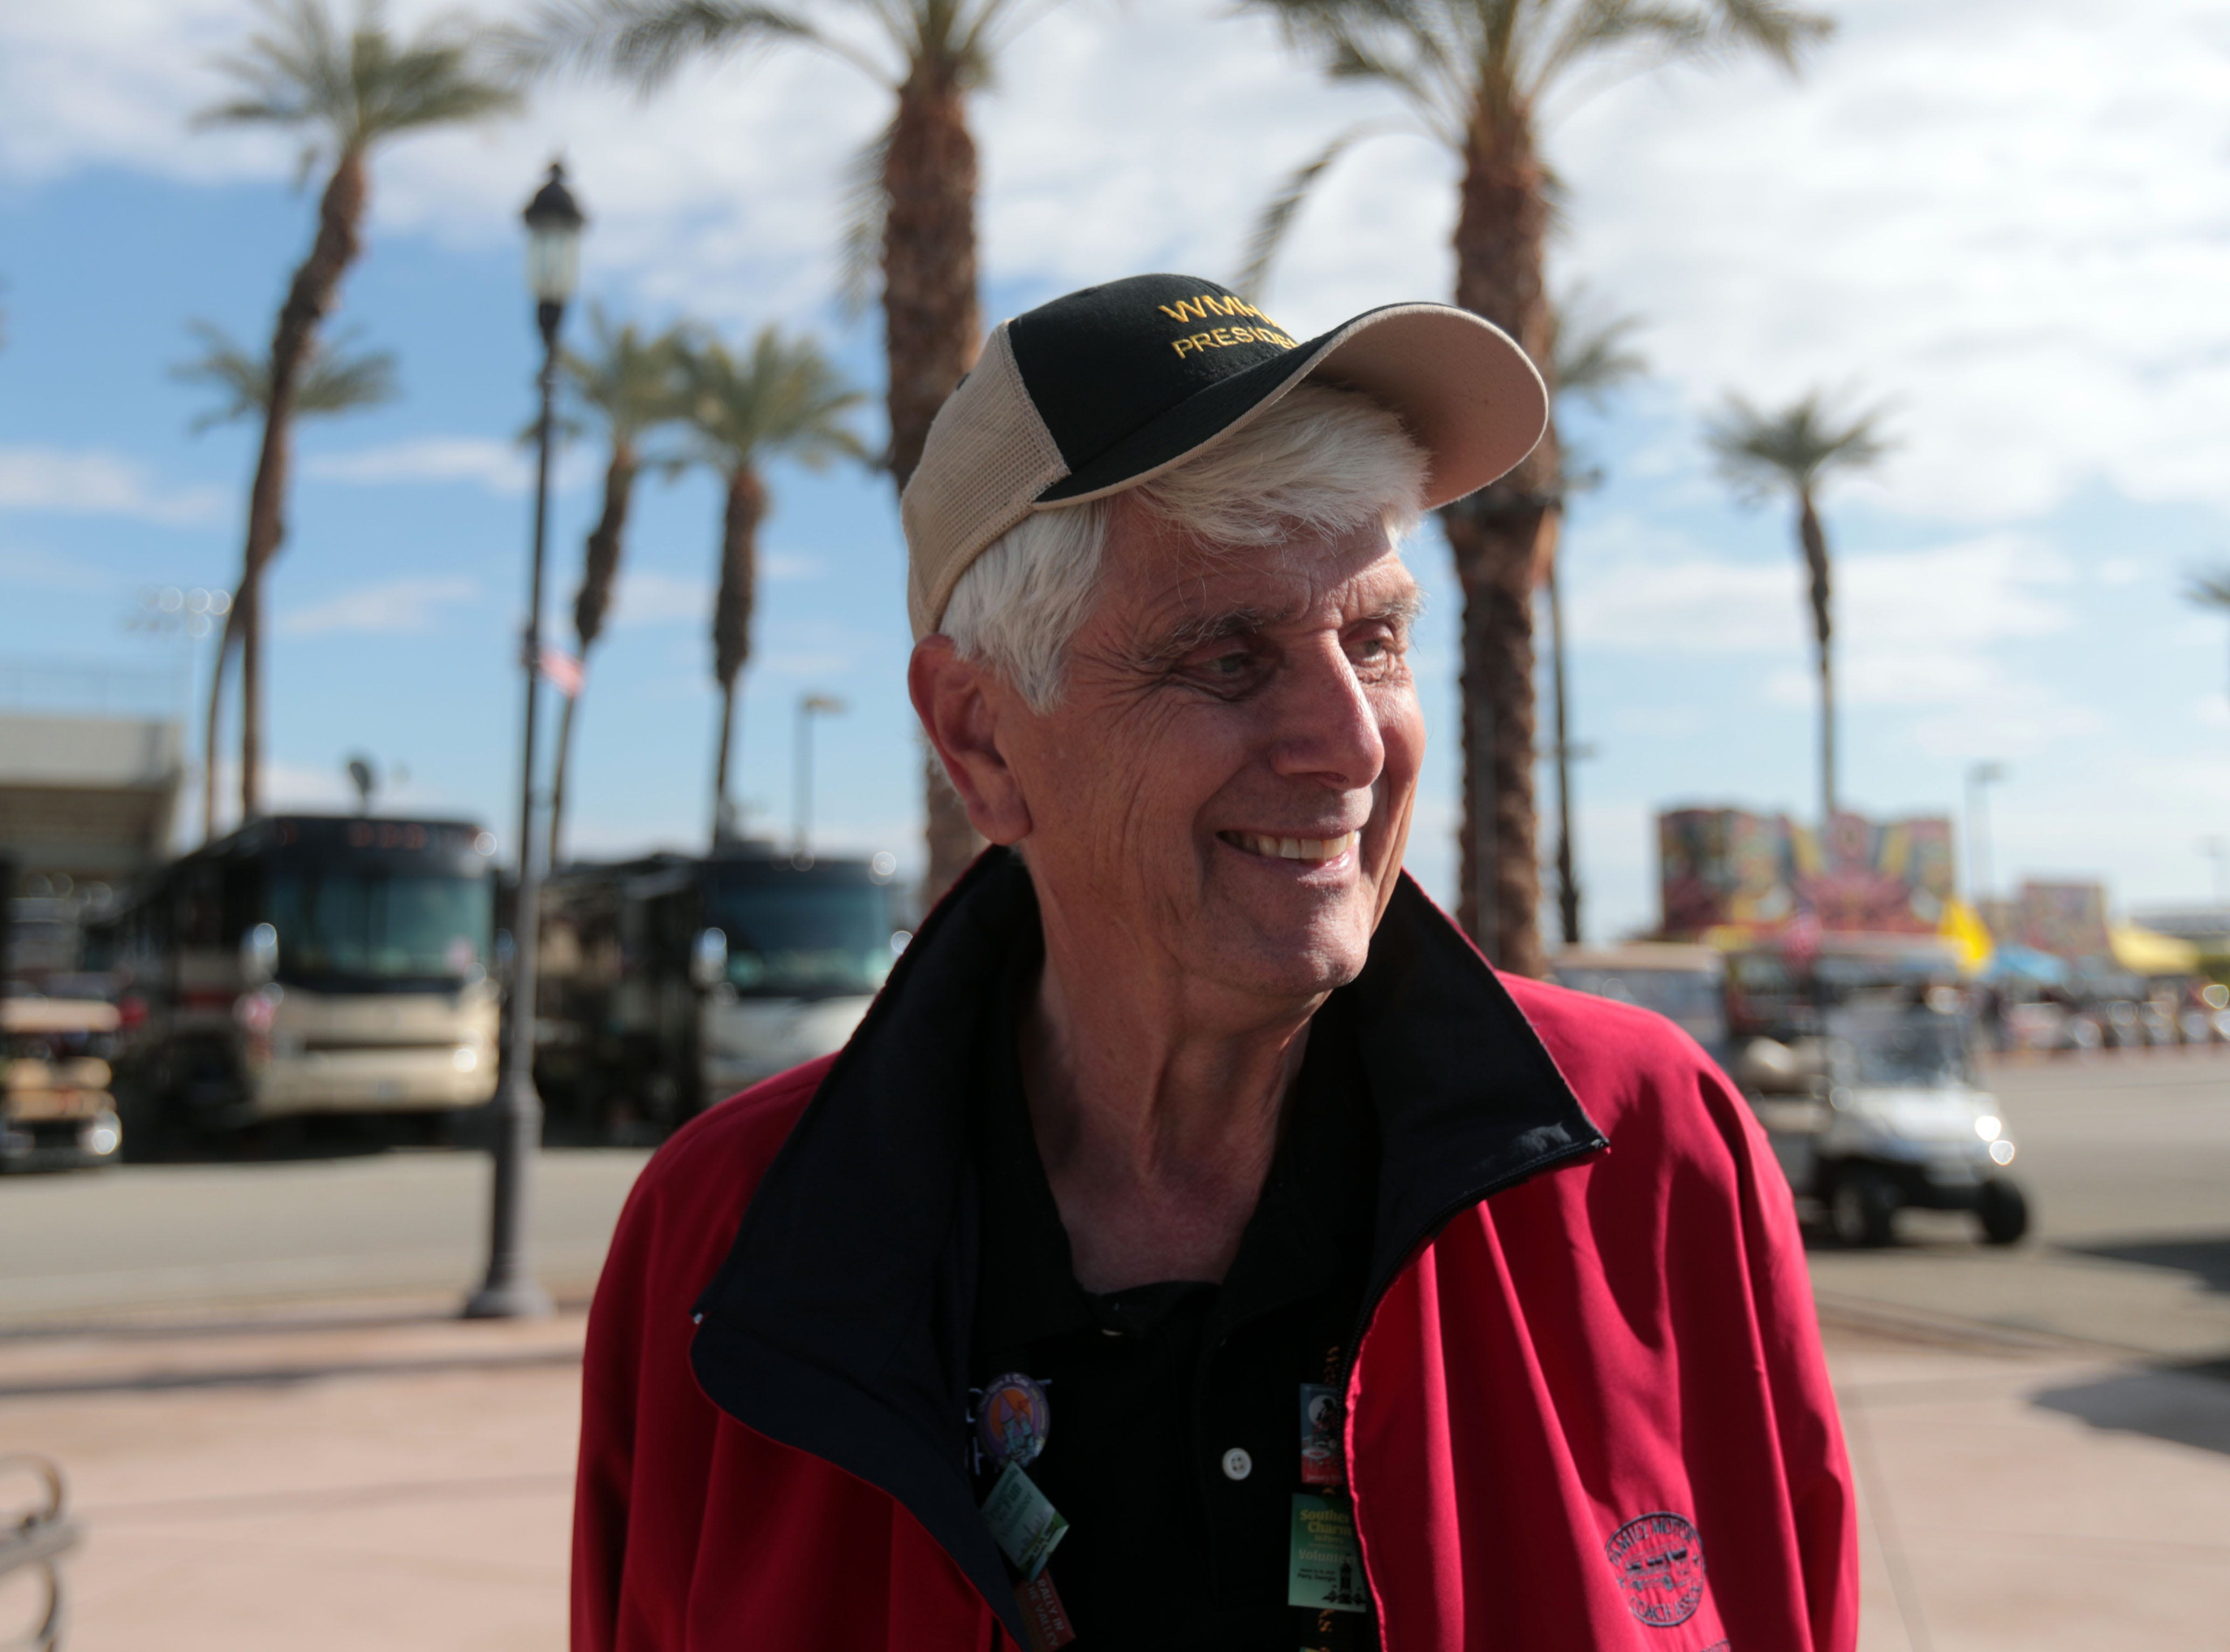 Lon Cross, the president of the Western Motor Home Association at Riverside County Fairgrounds in Indio on Saturday, January 12, 2019, during the FMCA annual motorhome convention.